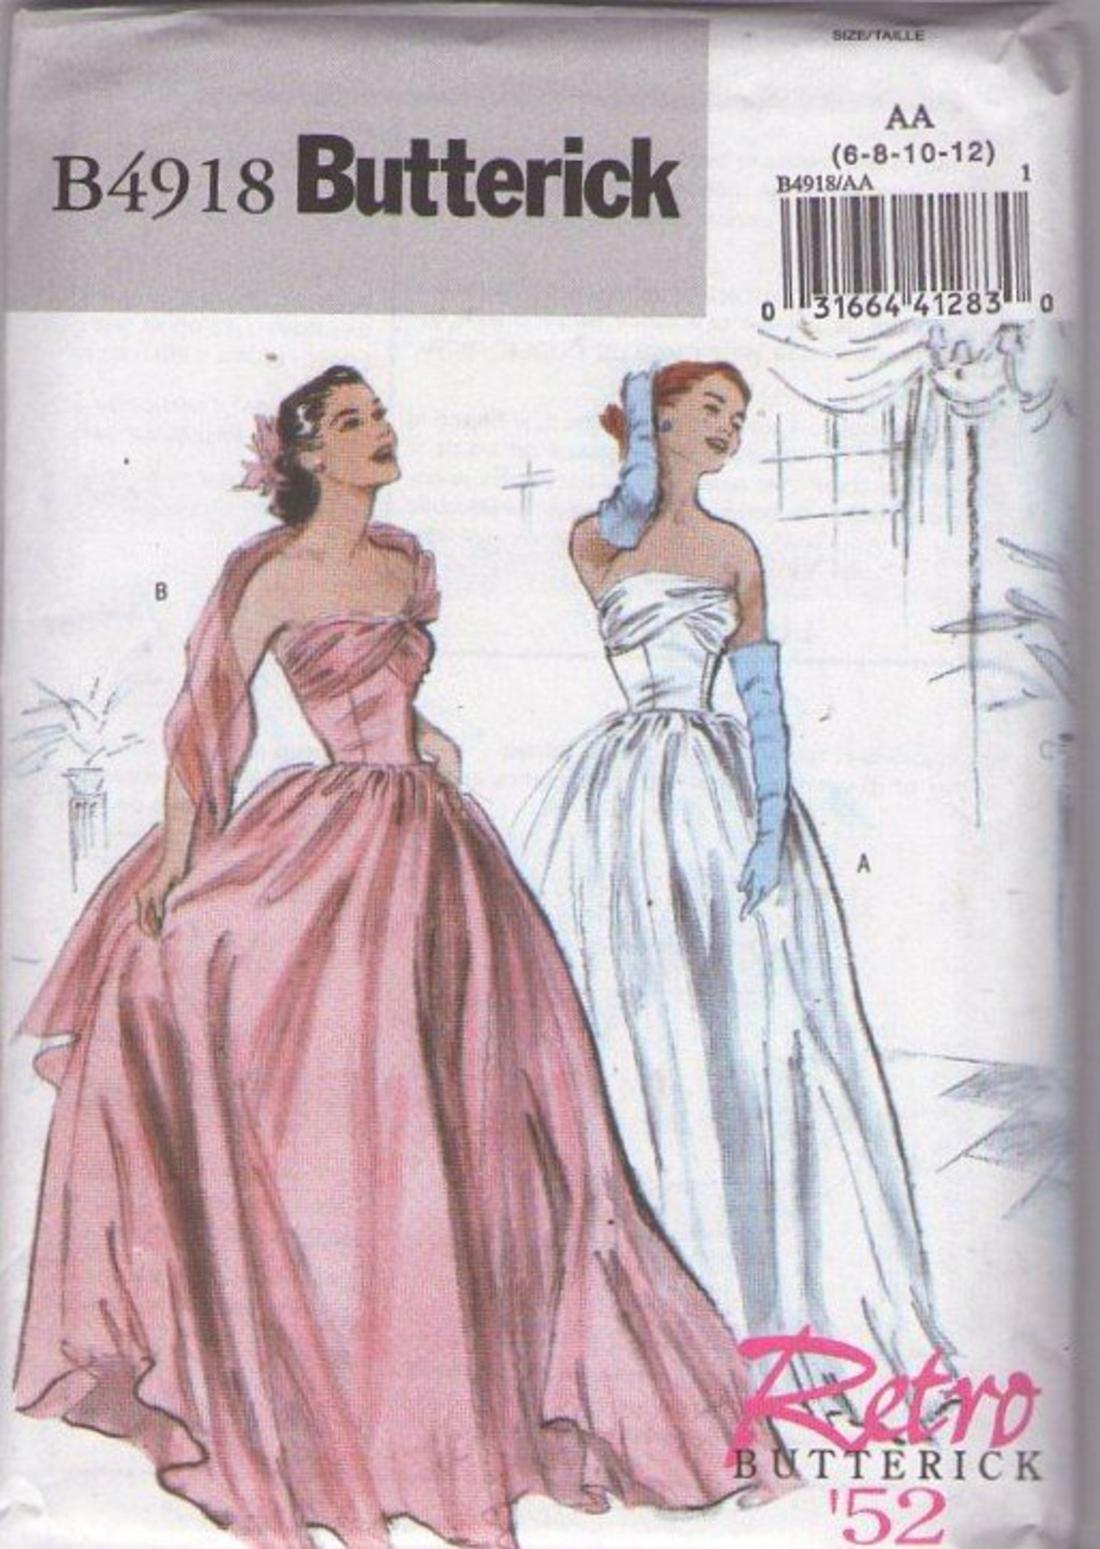 Momspatterns Vintage Sewing Patterns Butterick 4918